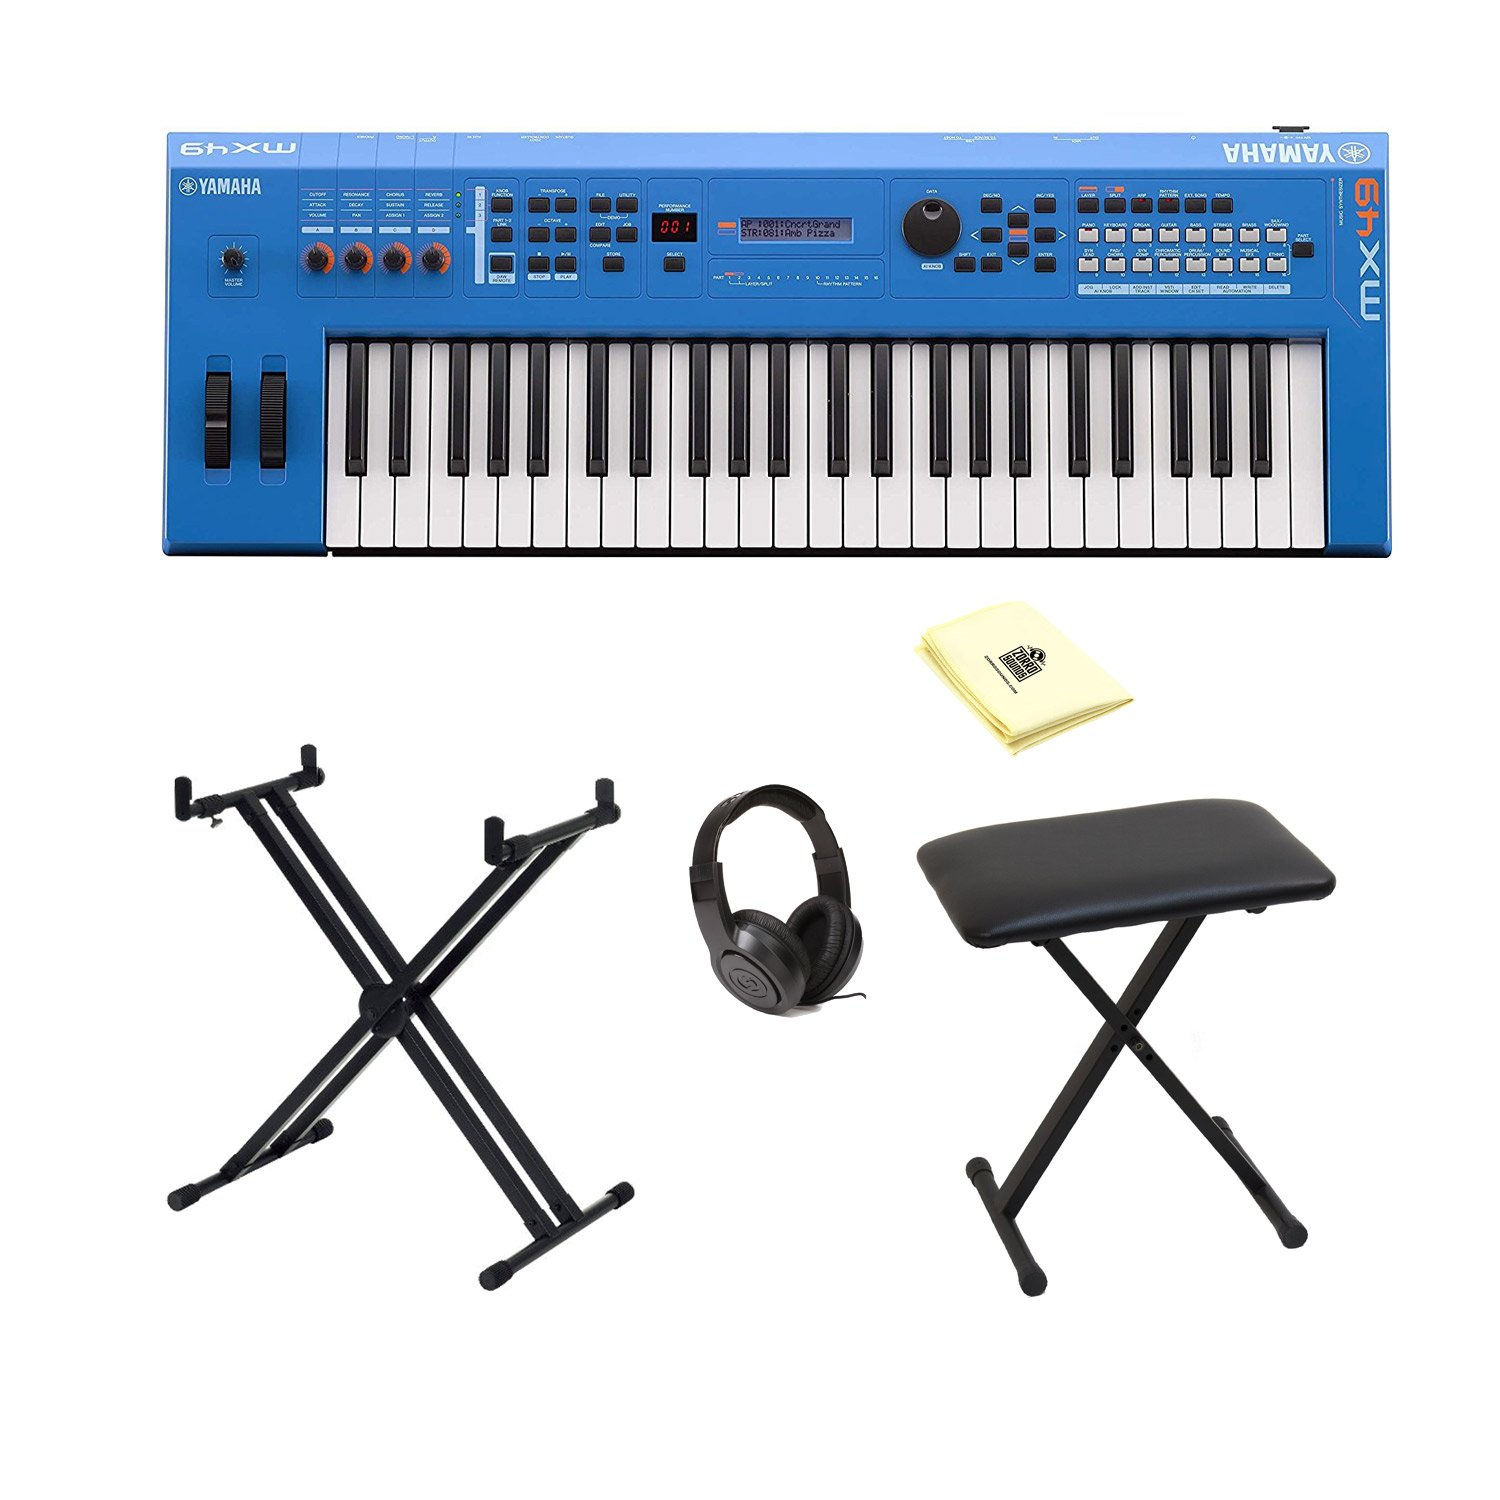 Yamaha MX49BU 49-Key Keyboard Music Production Synthesizer in Blue with Accessories